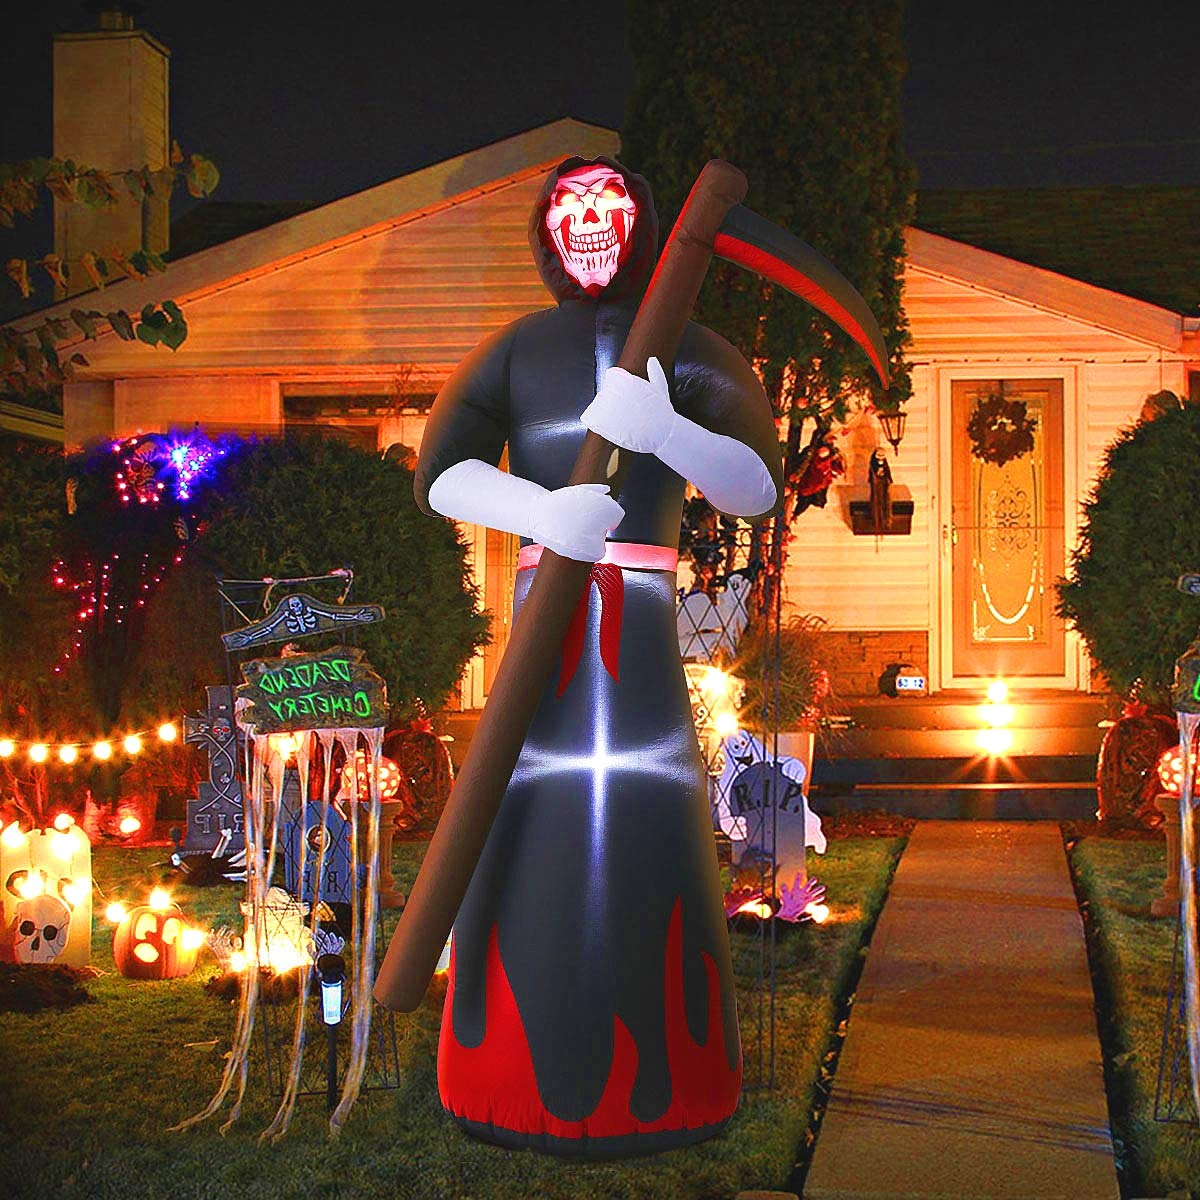 MAOYUE 8ft Halloween Inflatables Grim Reaper Inflatable Blow Up Outdoor Halloween Decorations Built-in LED Lights with Tethers, Stakes for Outdoor, Yard, Lawn, Garden